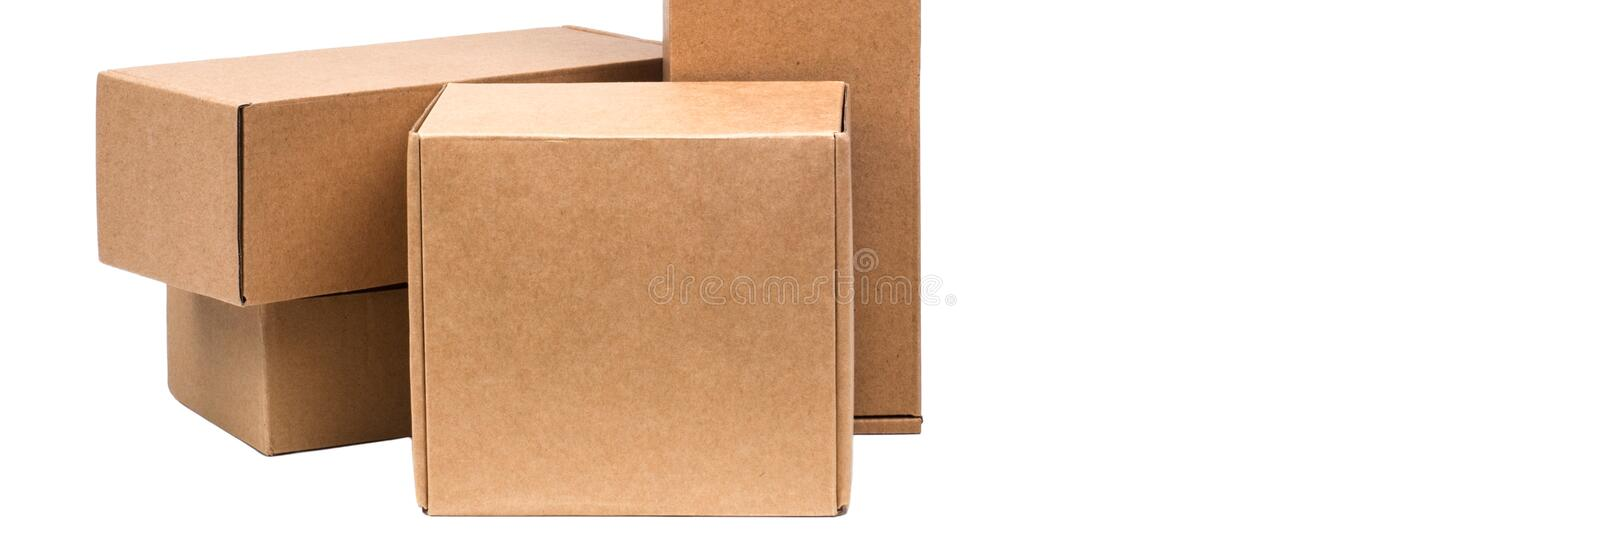 Cardboard boxes for goods on a white background. Different size. Isolated on white background.  royalty free stock image